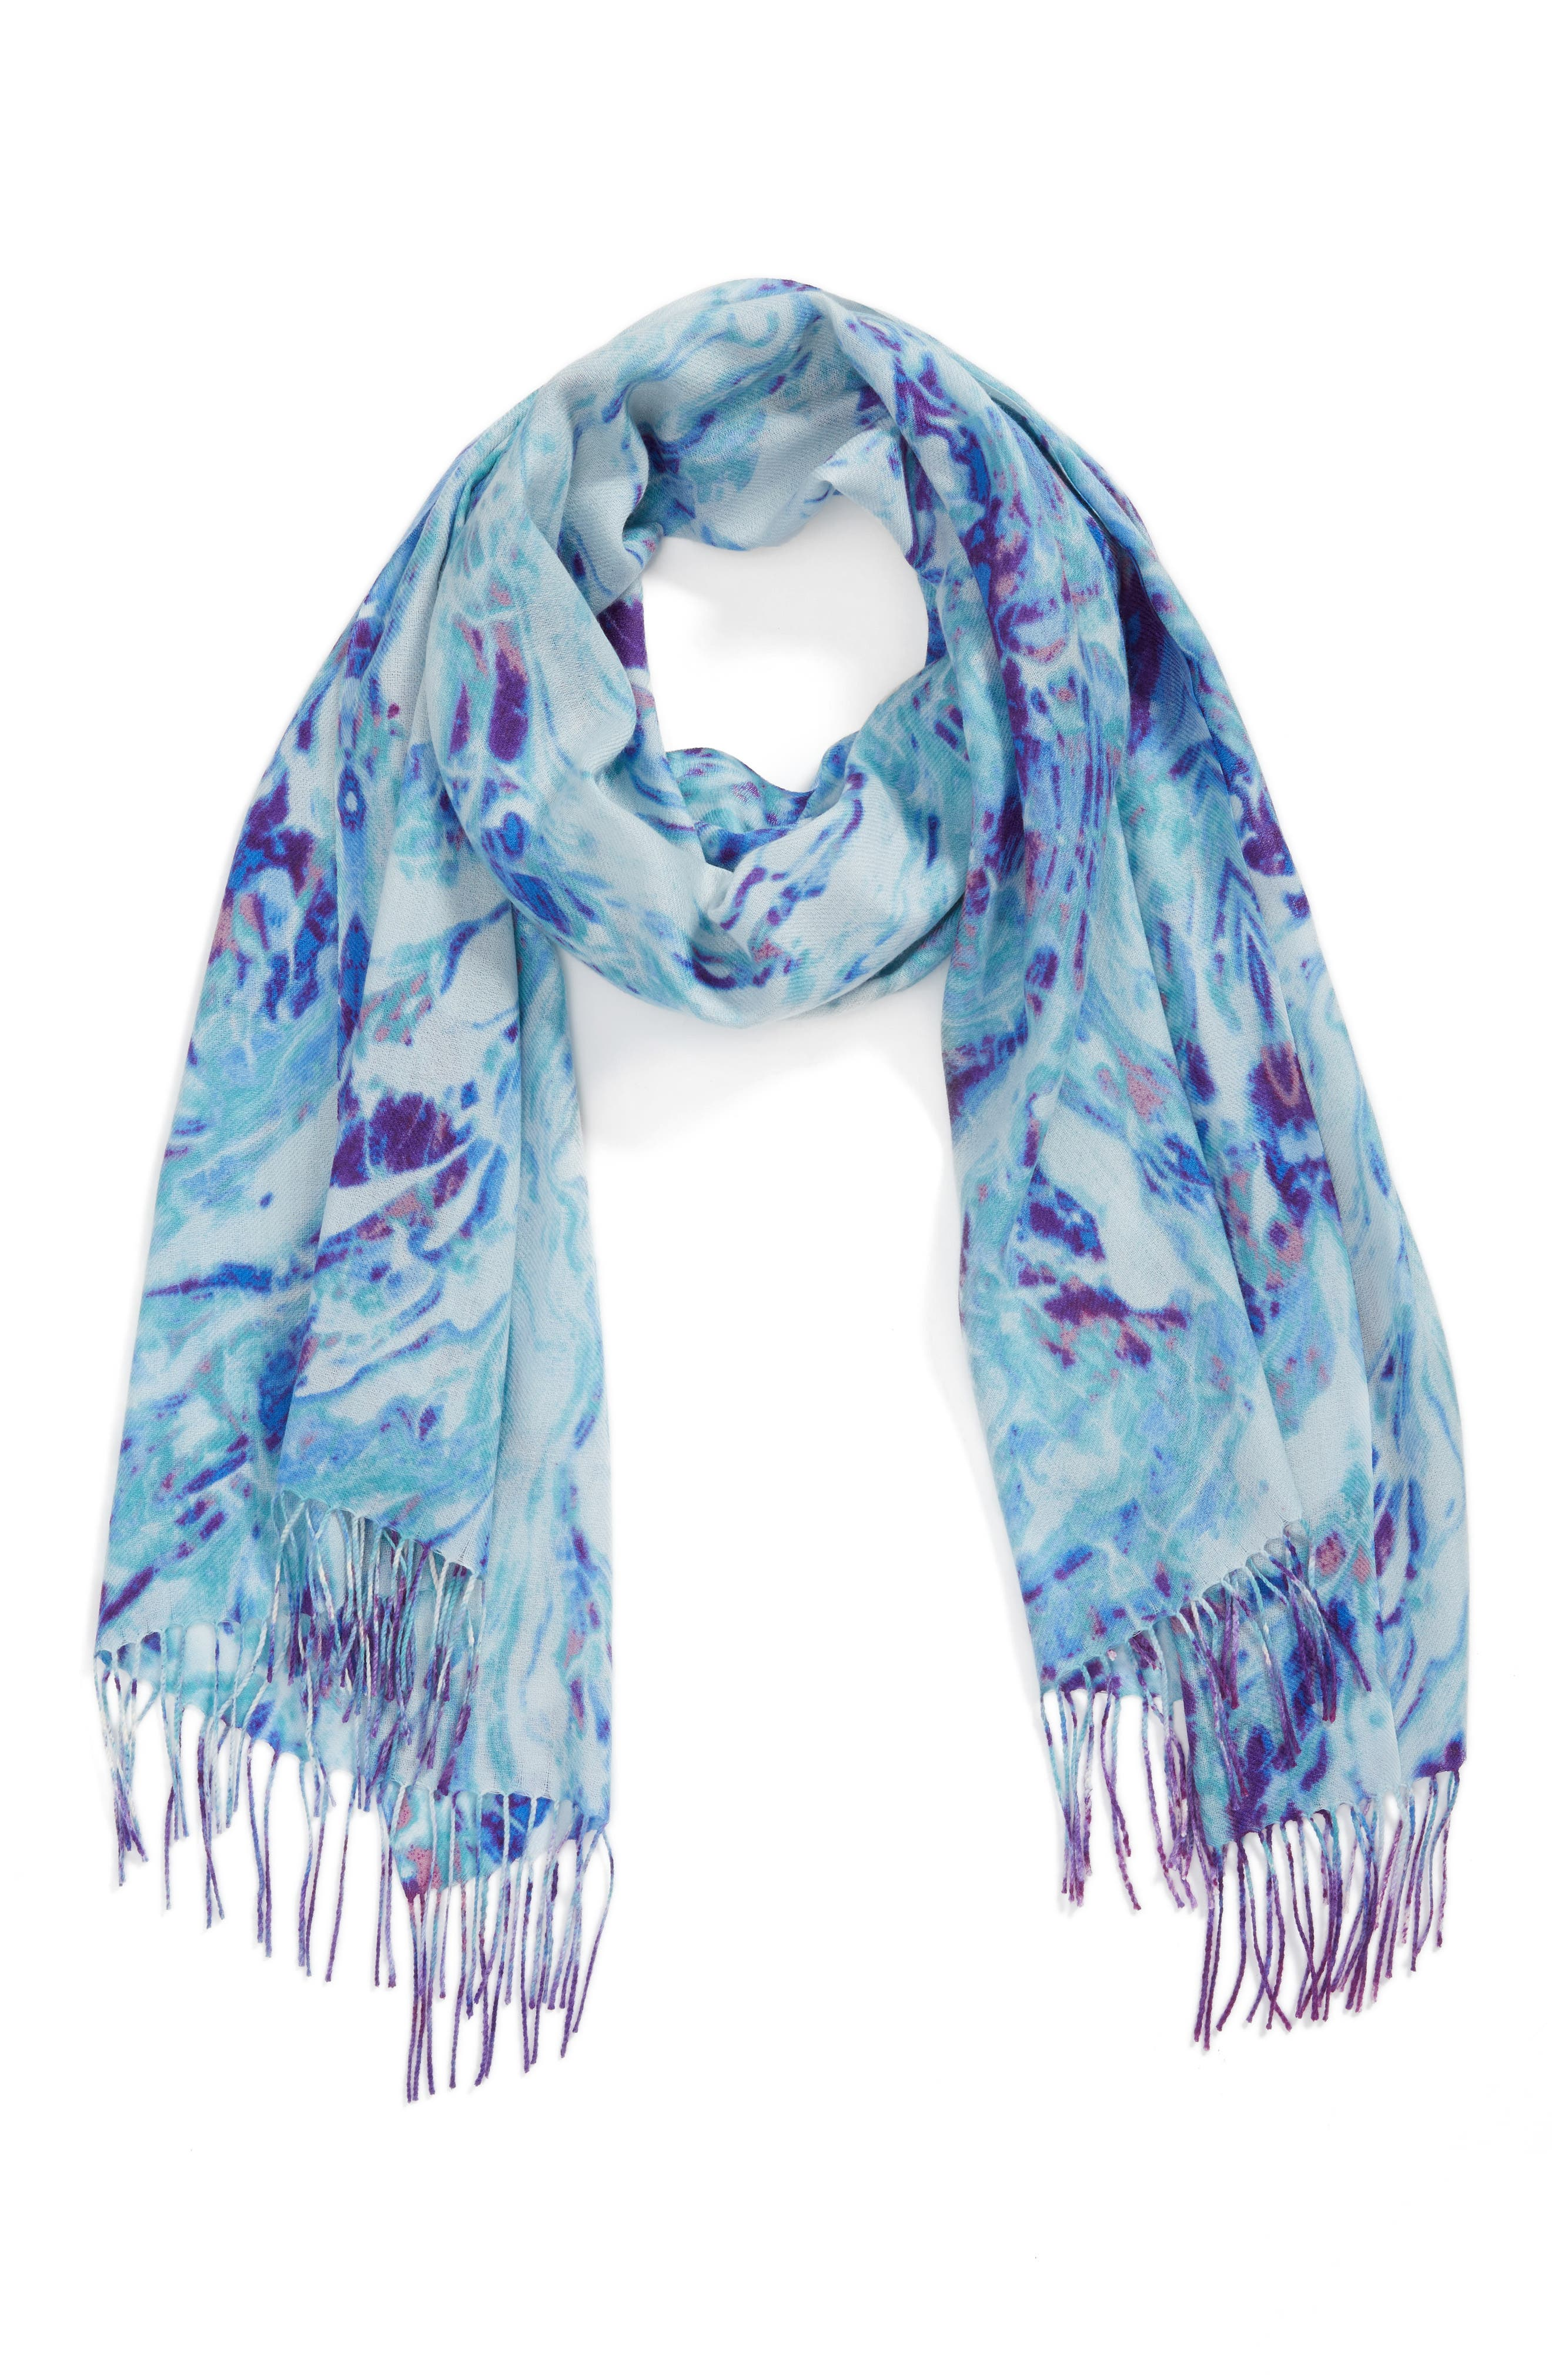 Marble Tissue Wool & Cashmere Scarf,                         Main,                         color, Blue Combo